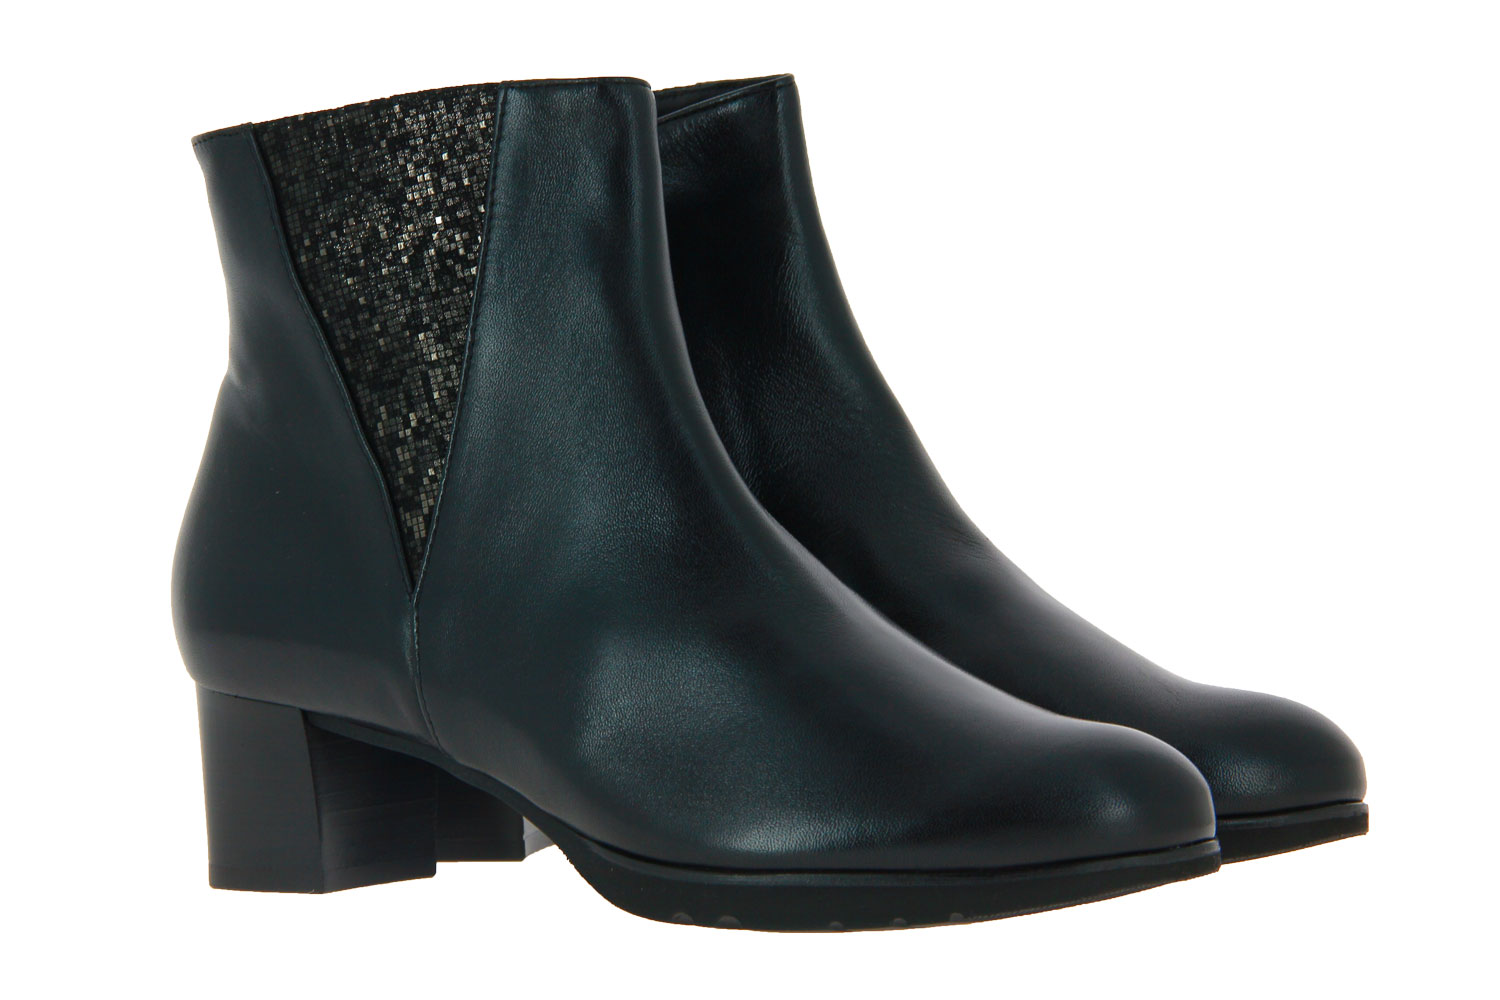 Hassia ankle boots SEVILLA WEITE-G NAPPALUX BLACK ANTRACIT